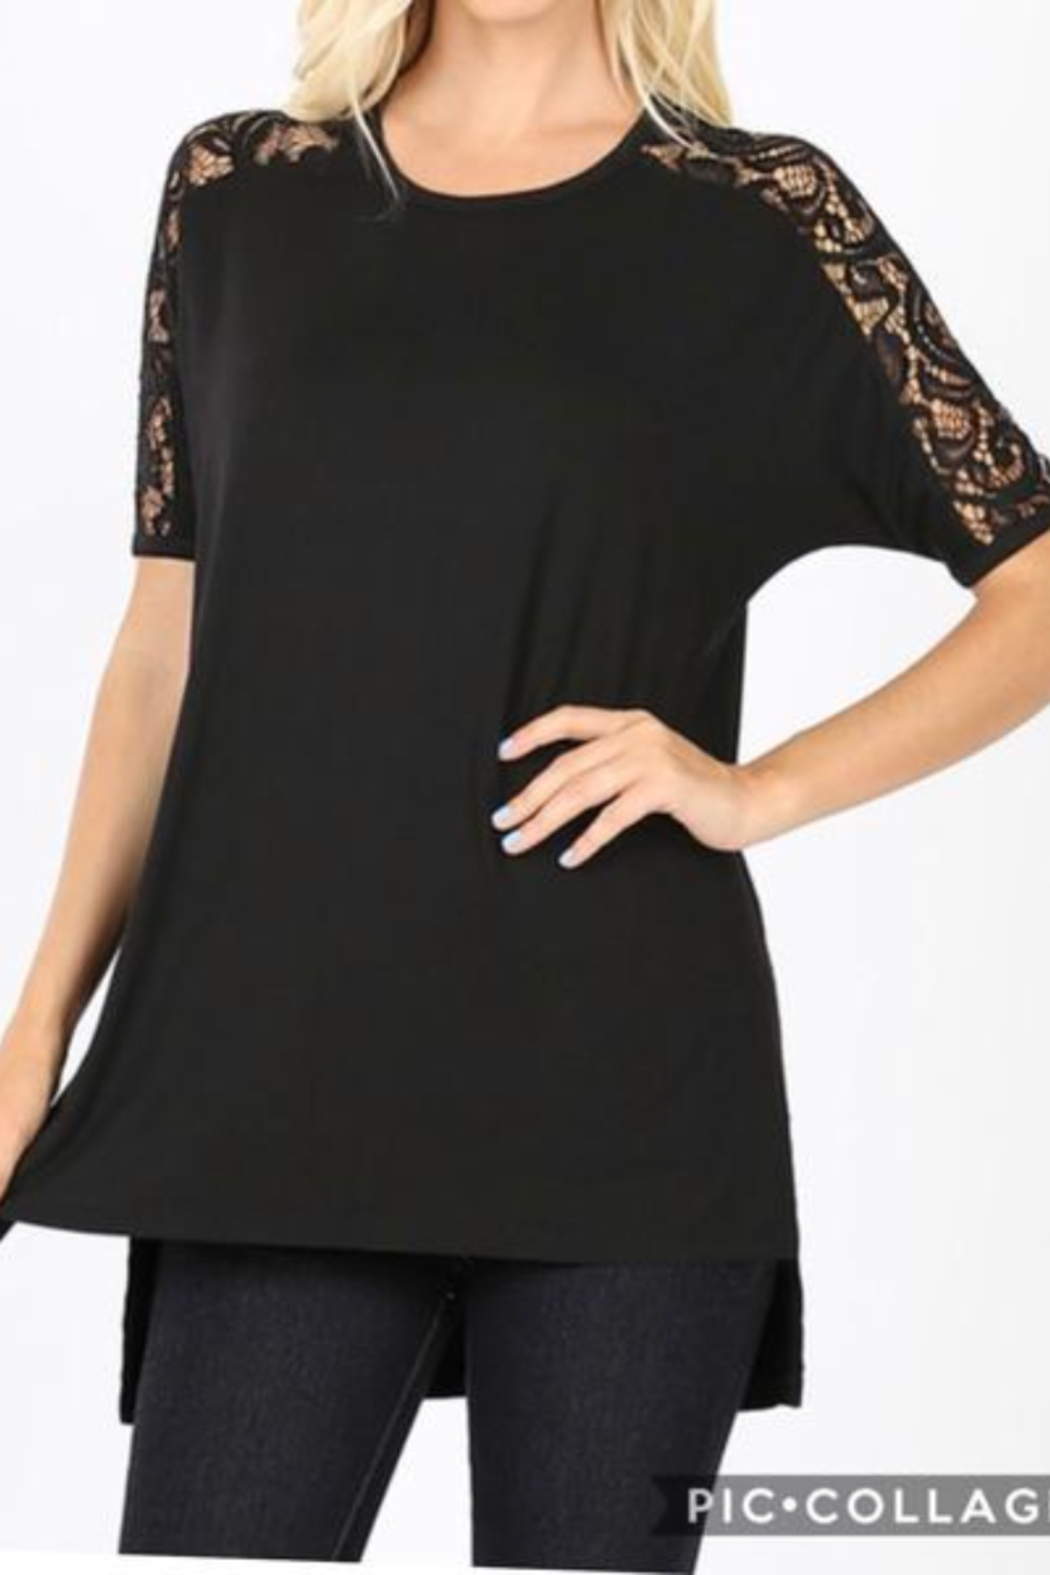 Kindred Mercantile My Fav T Lace Slv Black Curvy - Main Image